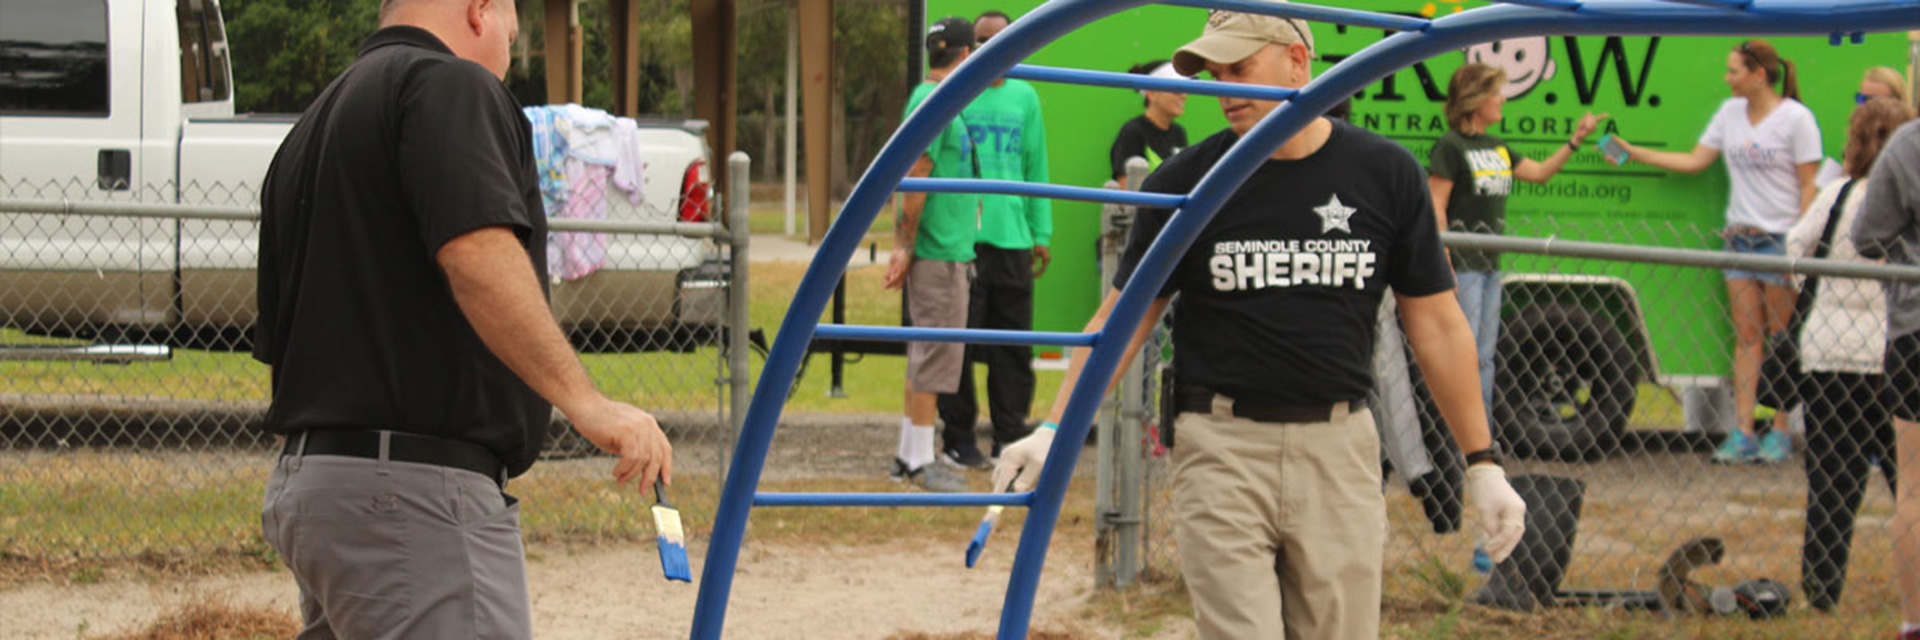 Seminole County Sheriff's Deputies Helping Paint a Playground